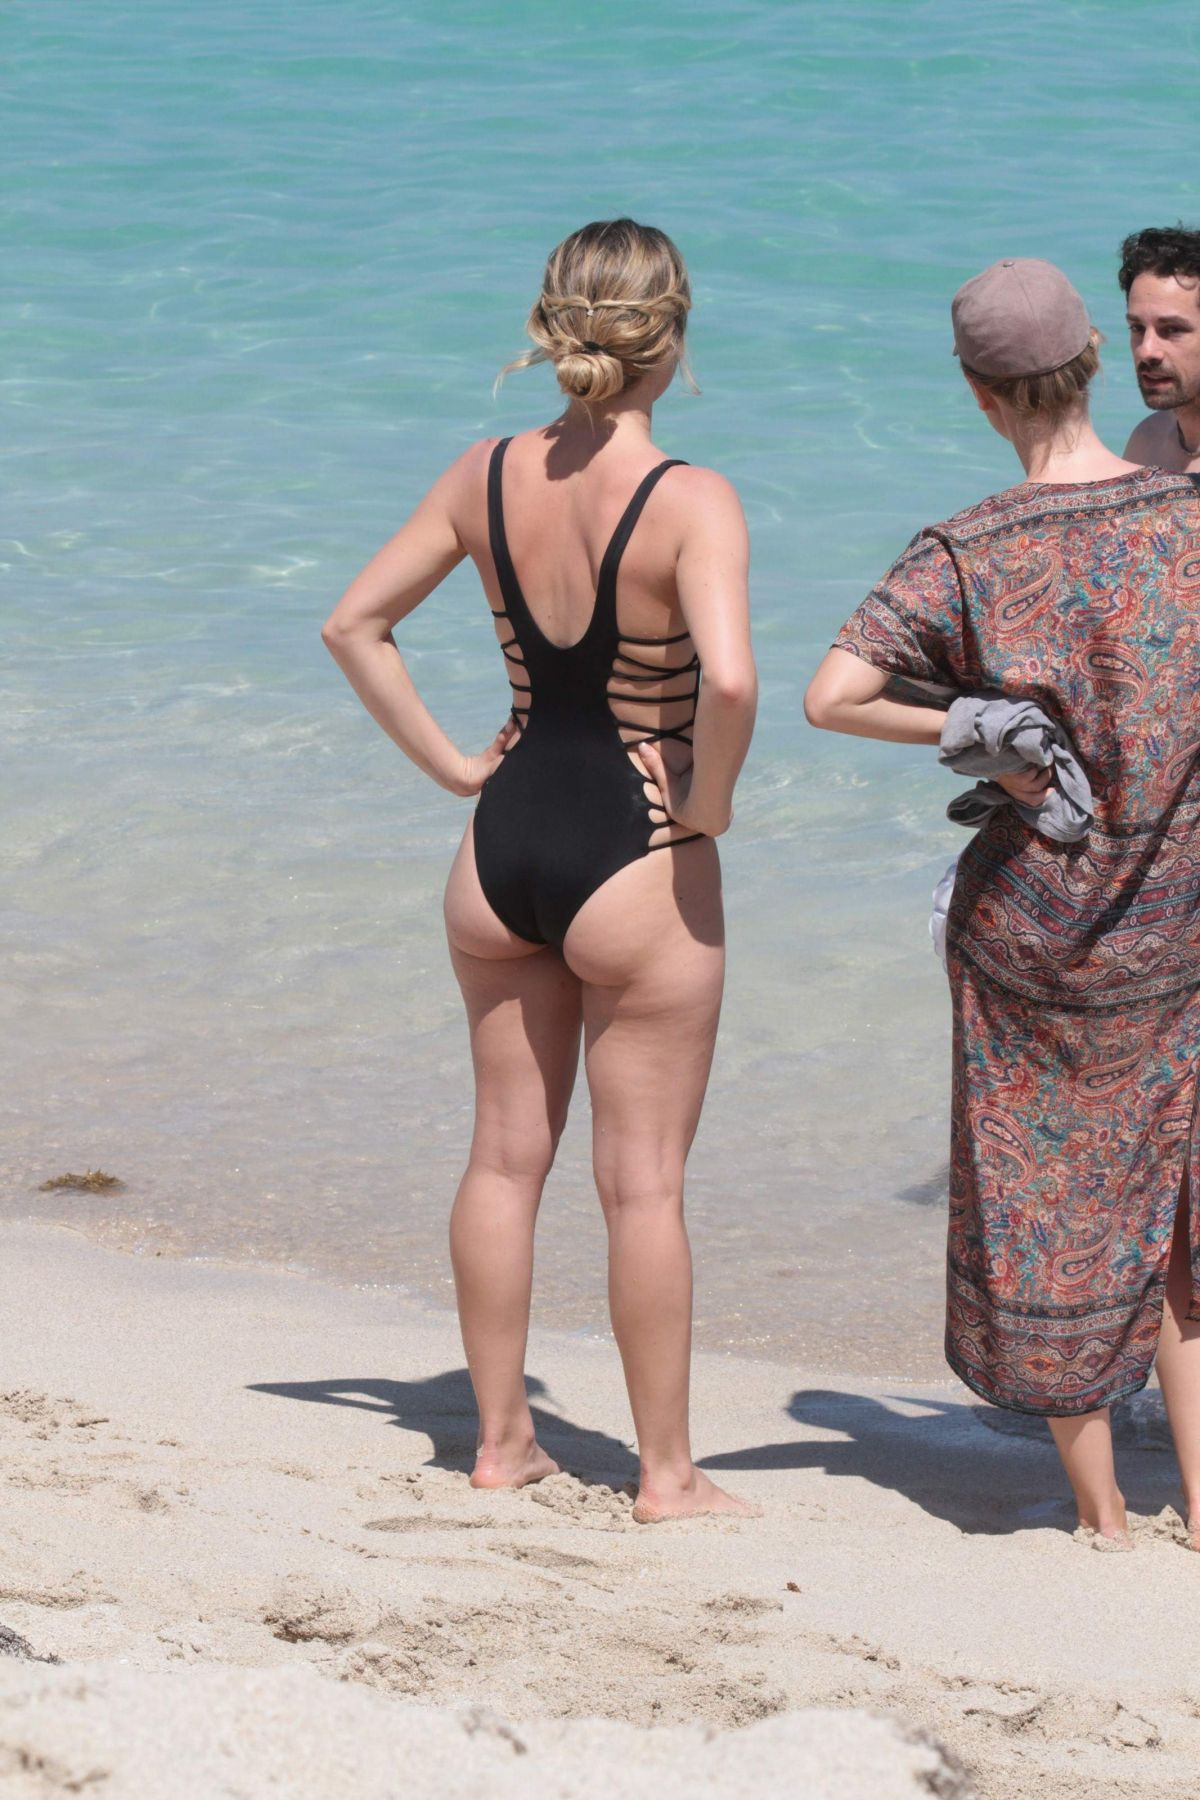 Nude beach photos pictures clips — photo 11